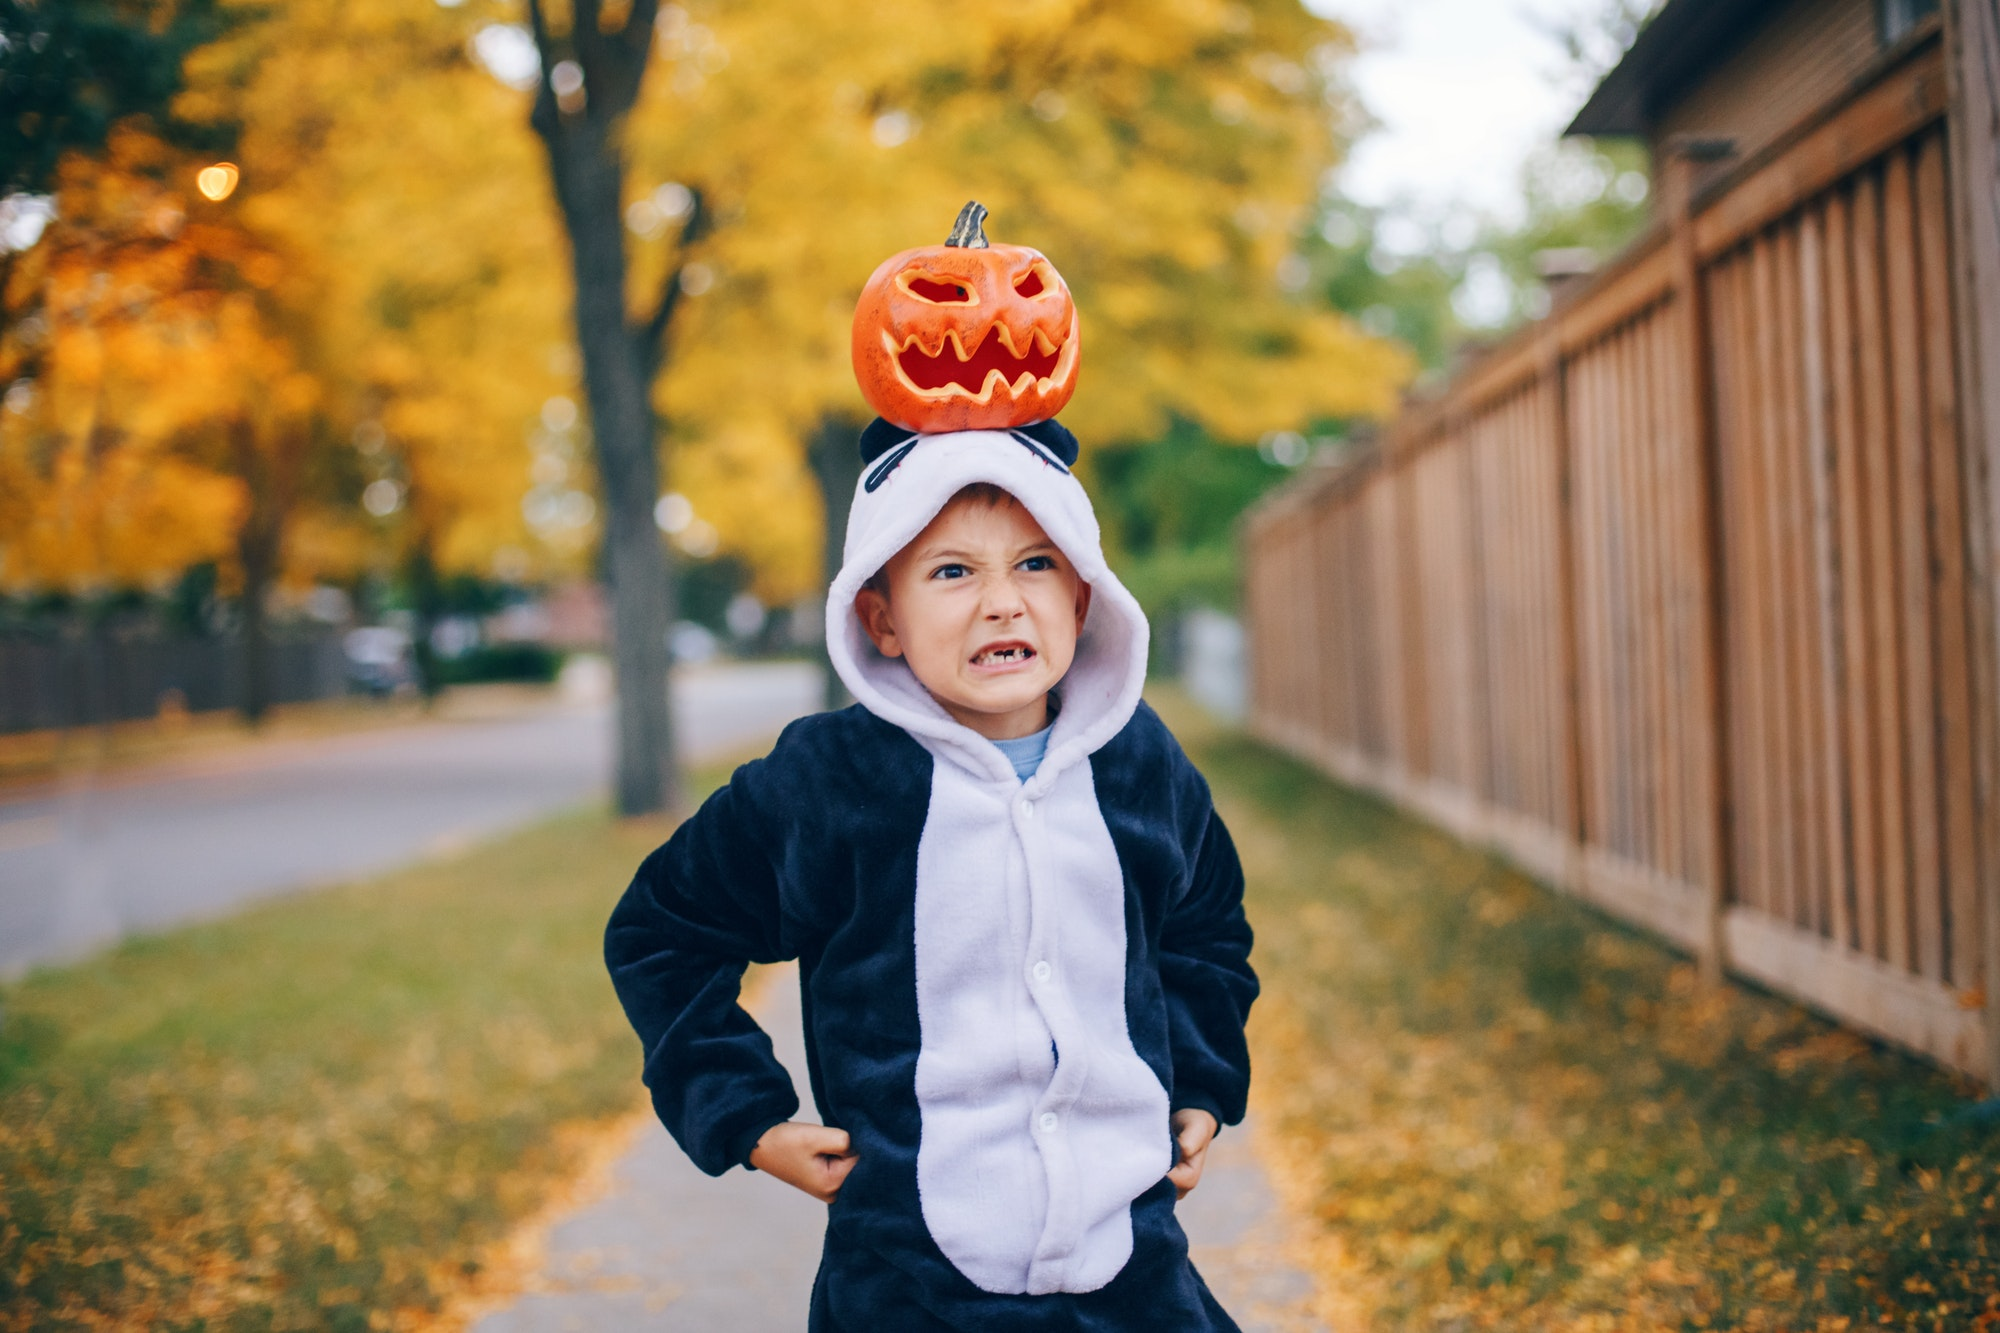 Grumpy angry mad boy in panda costume with red pumpkin on head. Kid child celebrating Halloween.